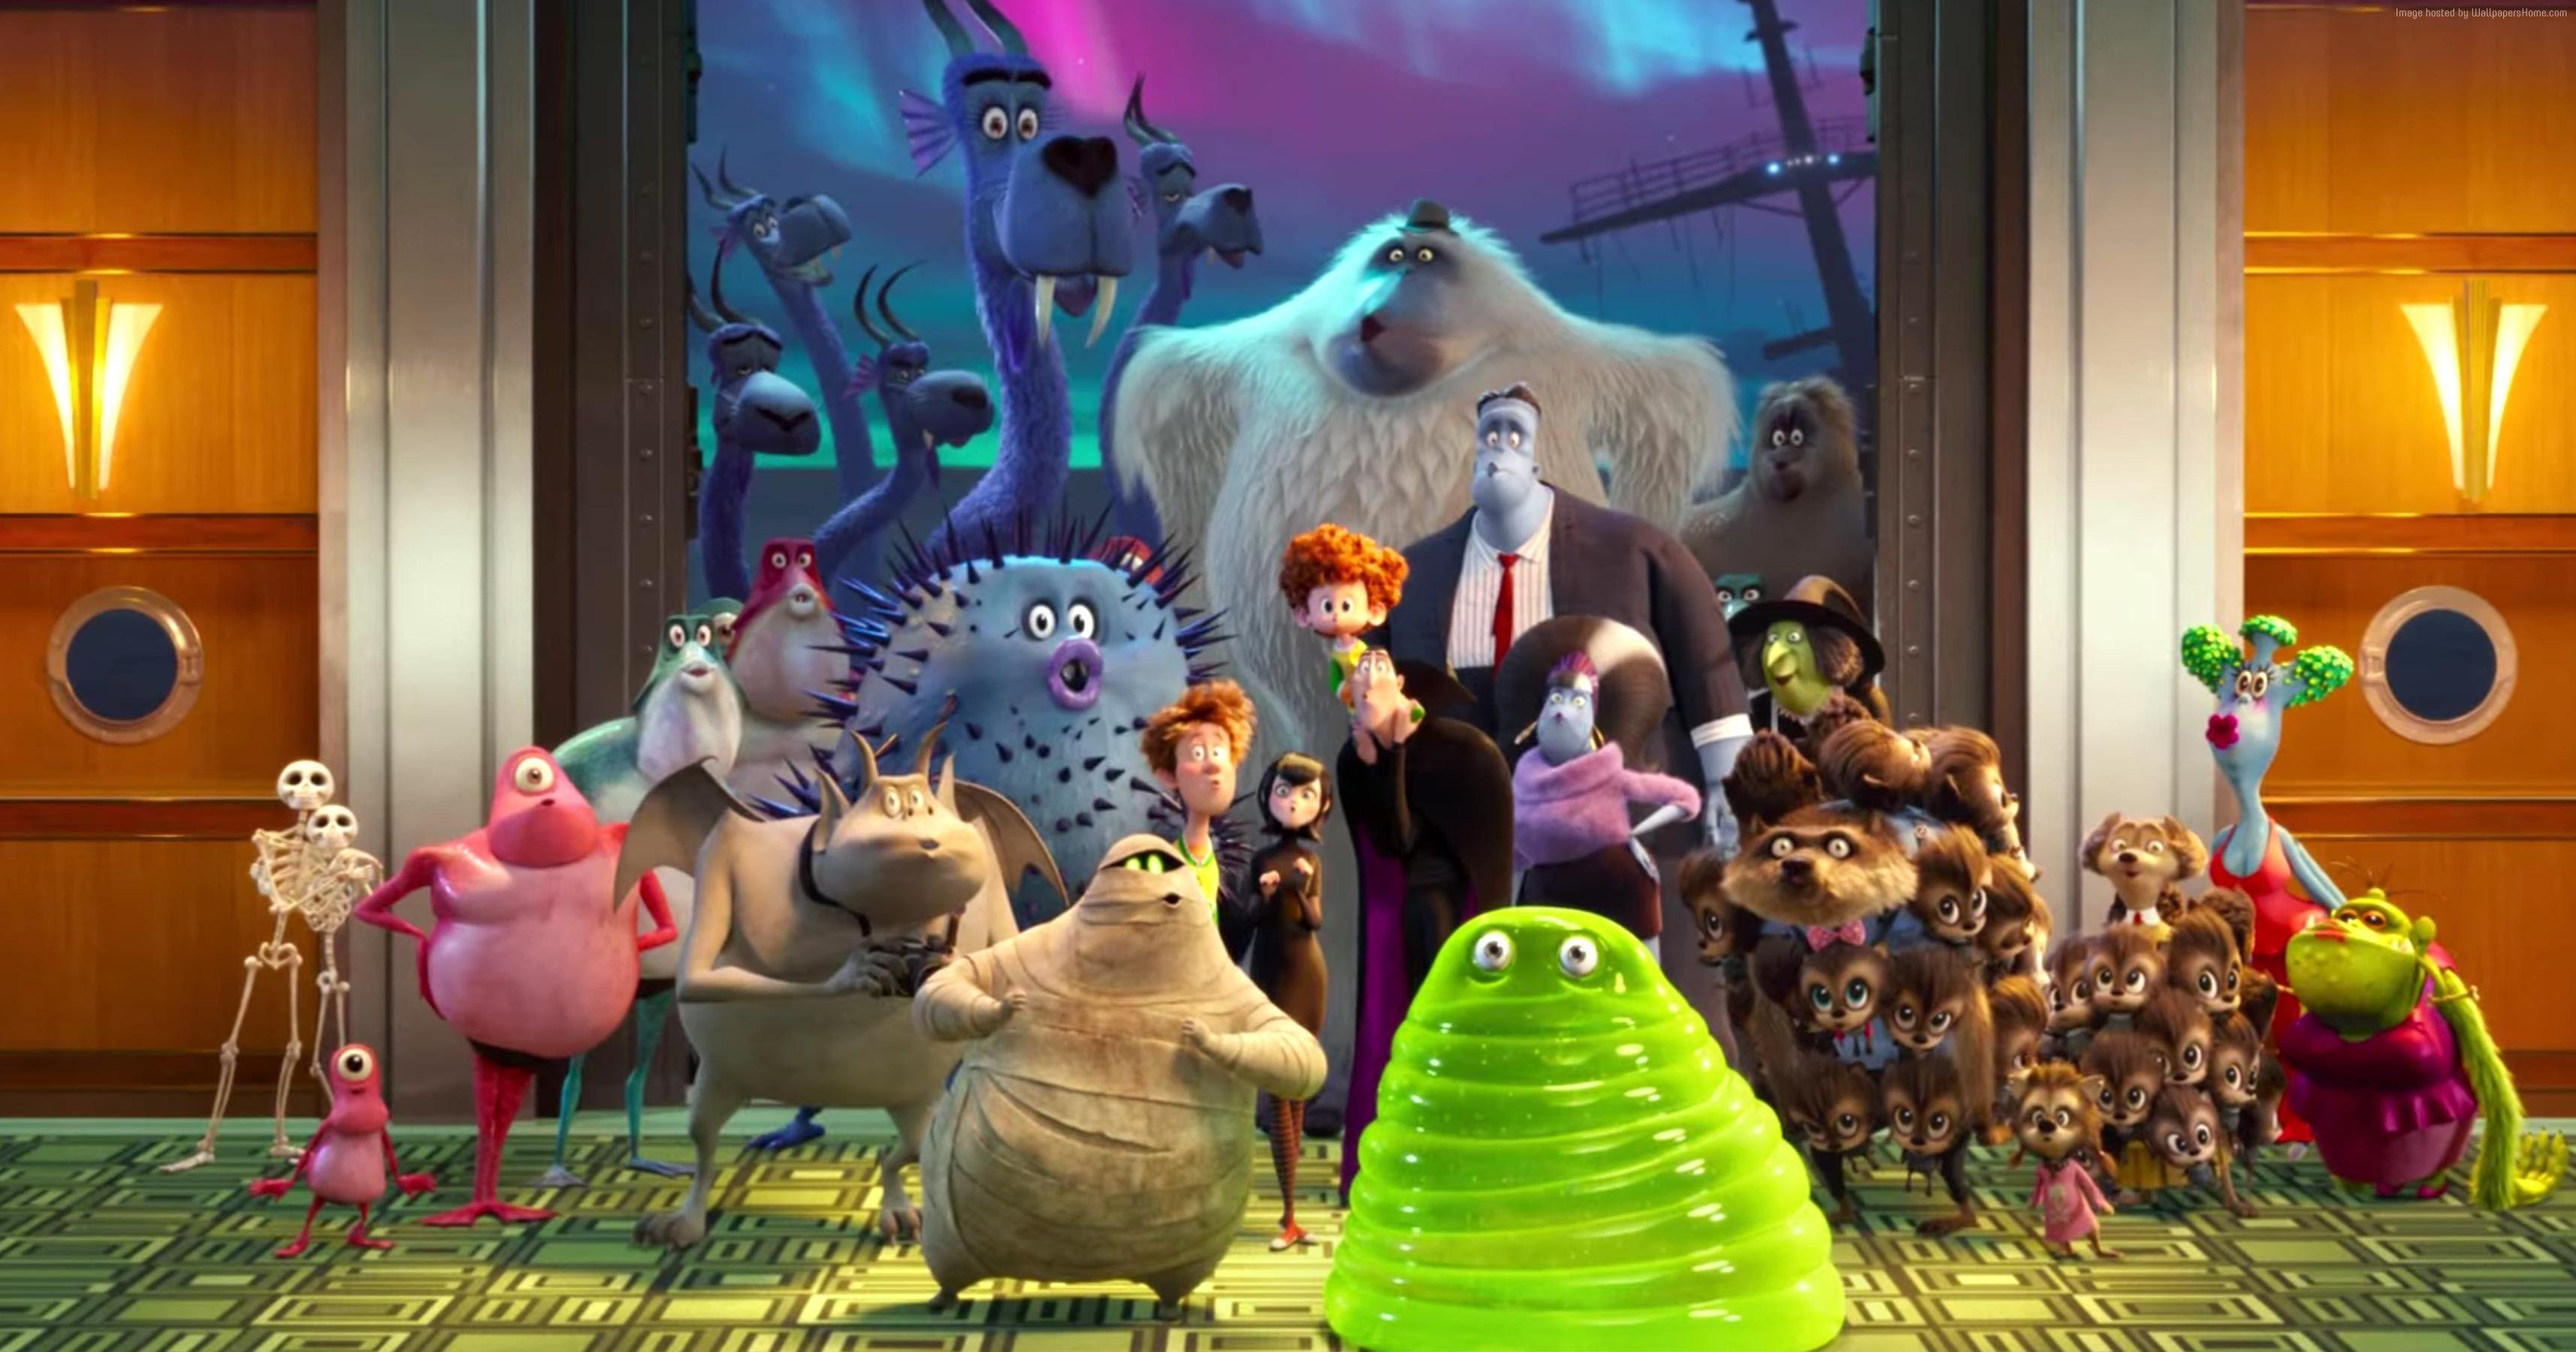 Hotel Transylvania 3 Wallpapers Wallpaper Cave